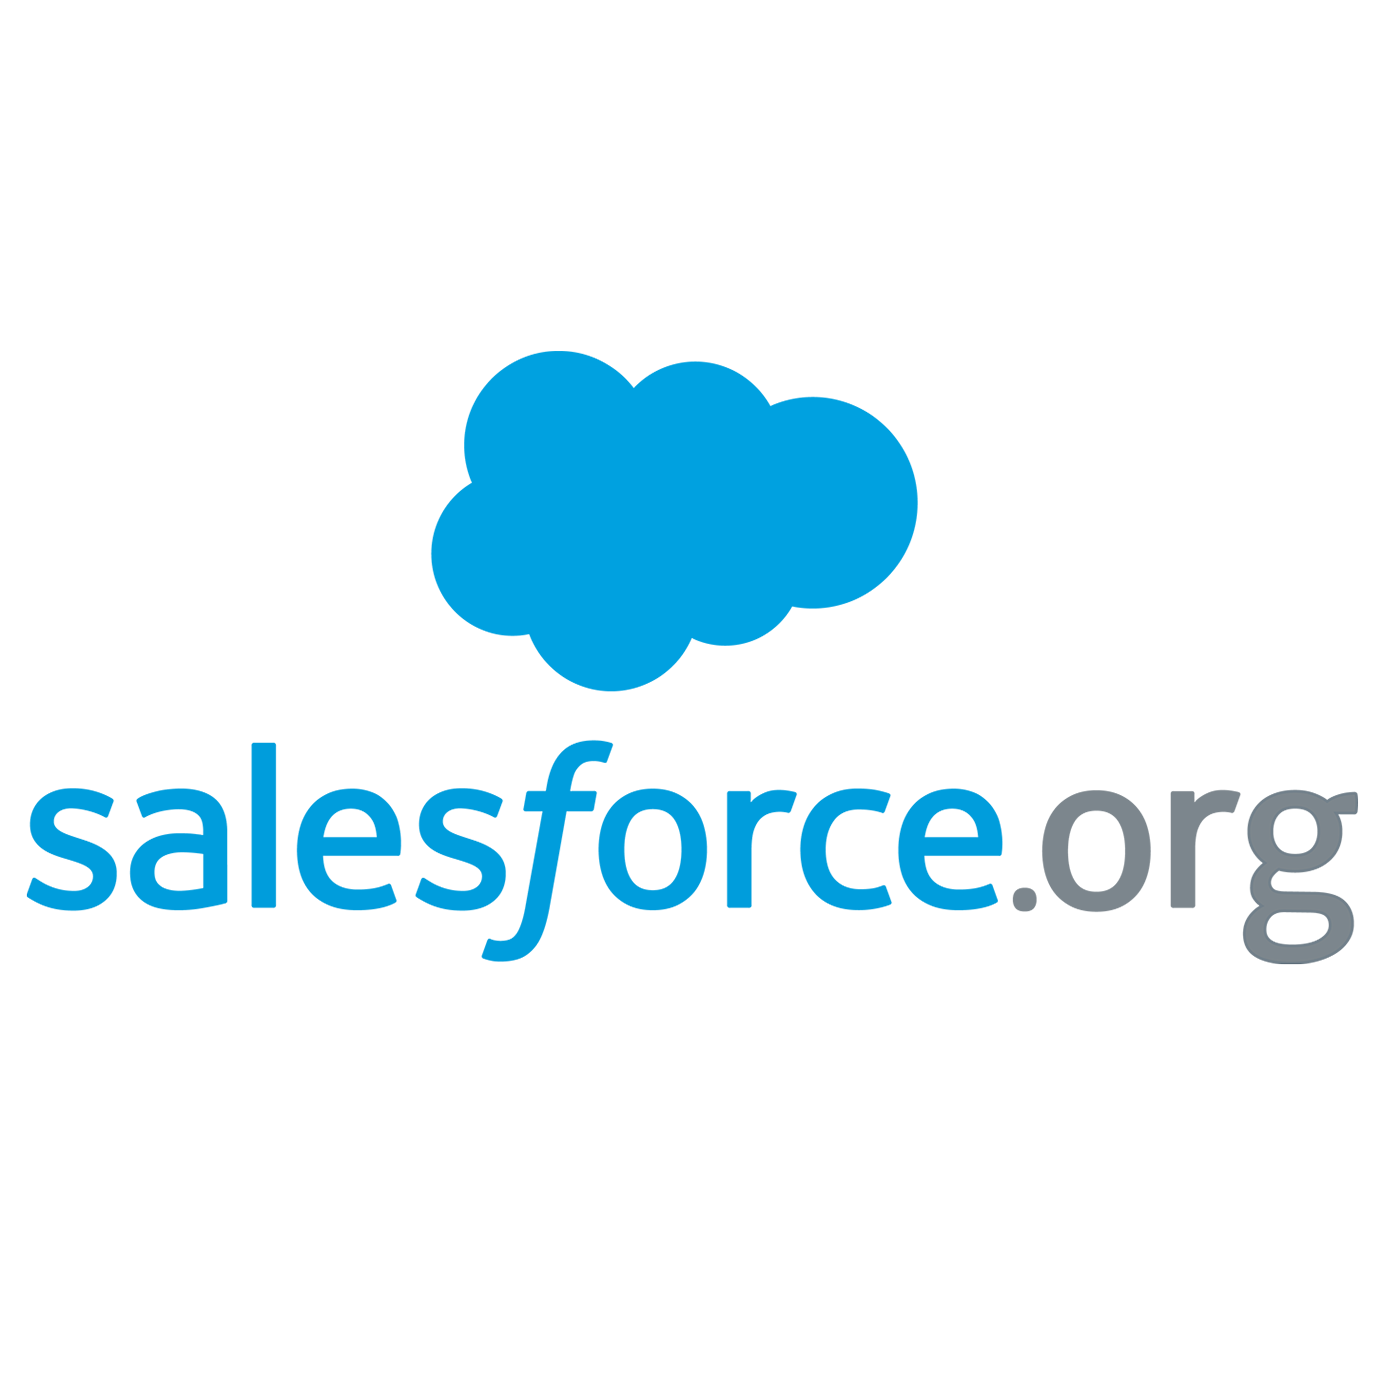 salesforce.com, inc. is an American cloud computing company headquartered in San Francisco, California. Though its revenue comes from a customer relationship management (CRM) product, Salesforce also capitalizes on commercial applications of social networking through acquisition.